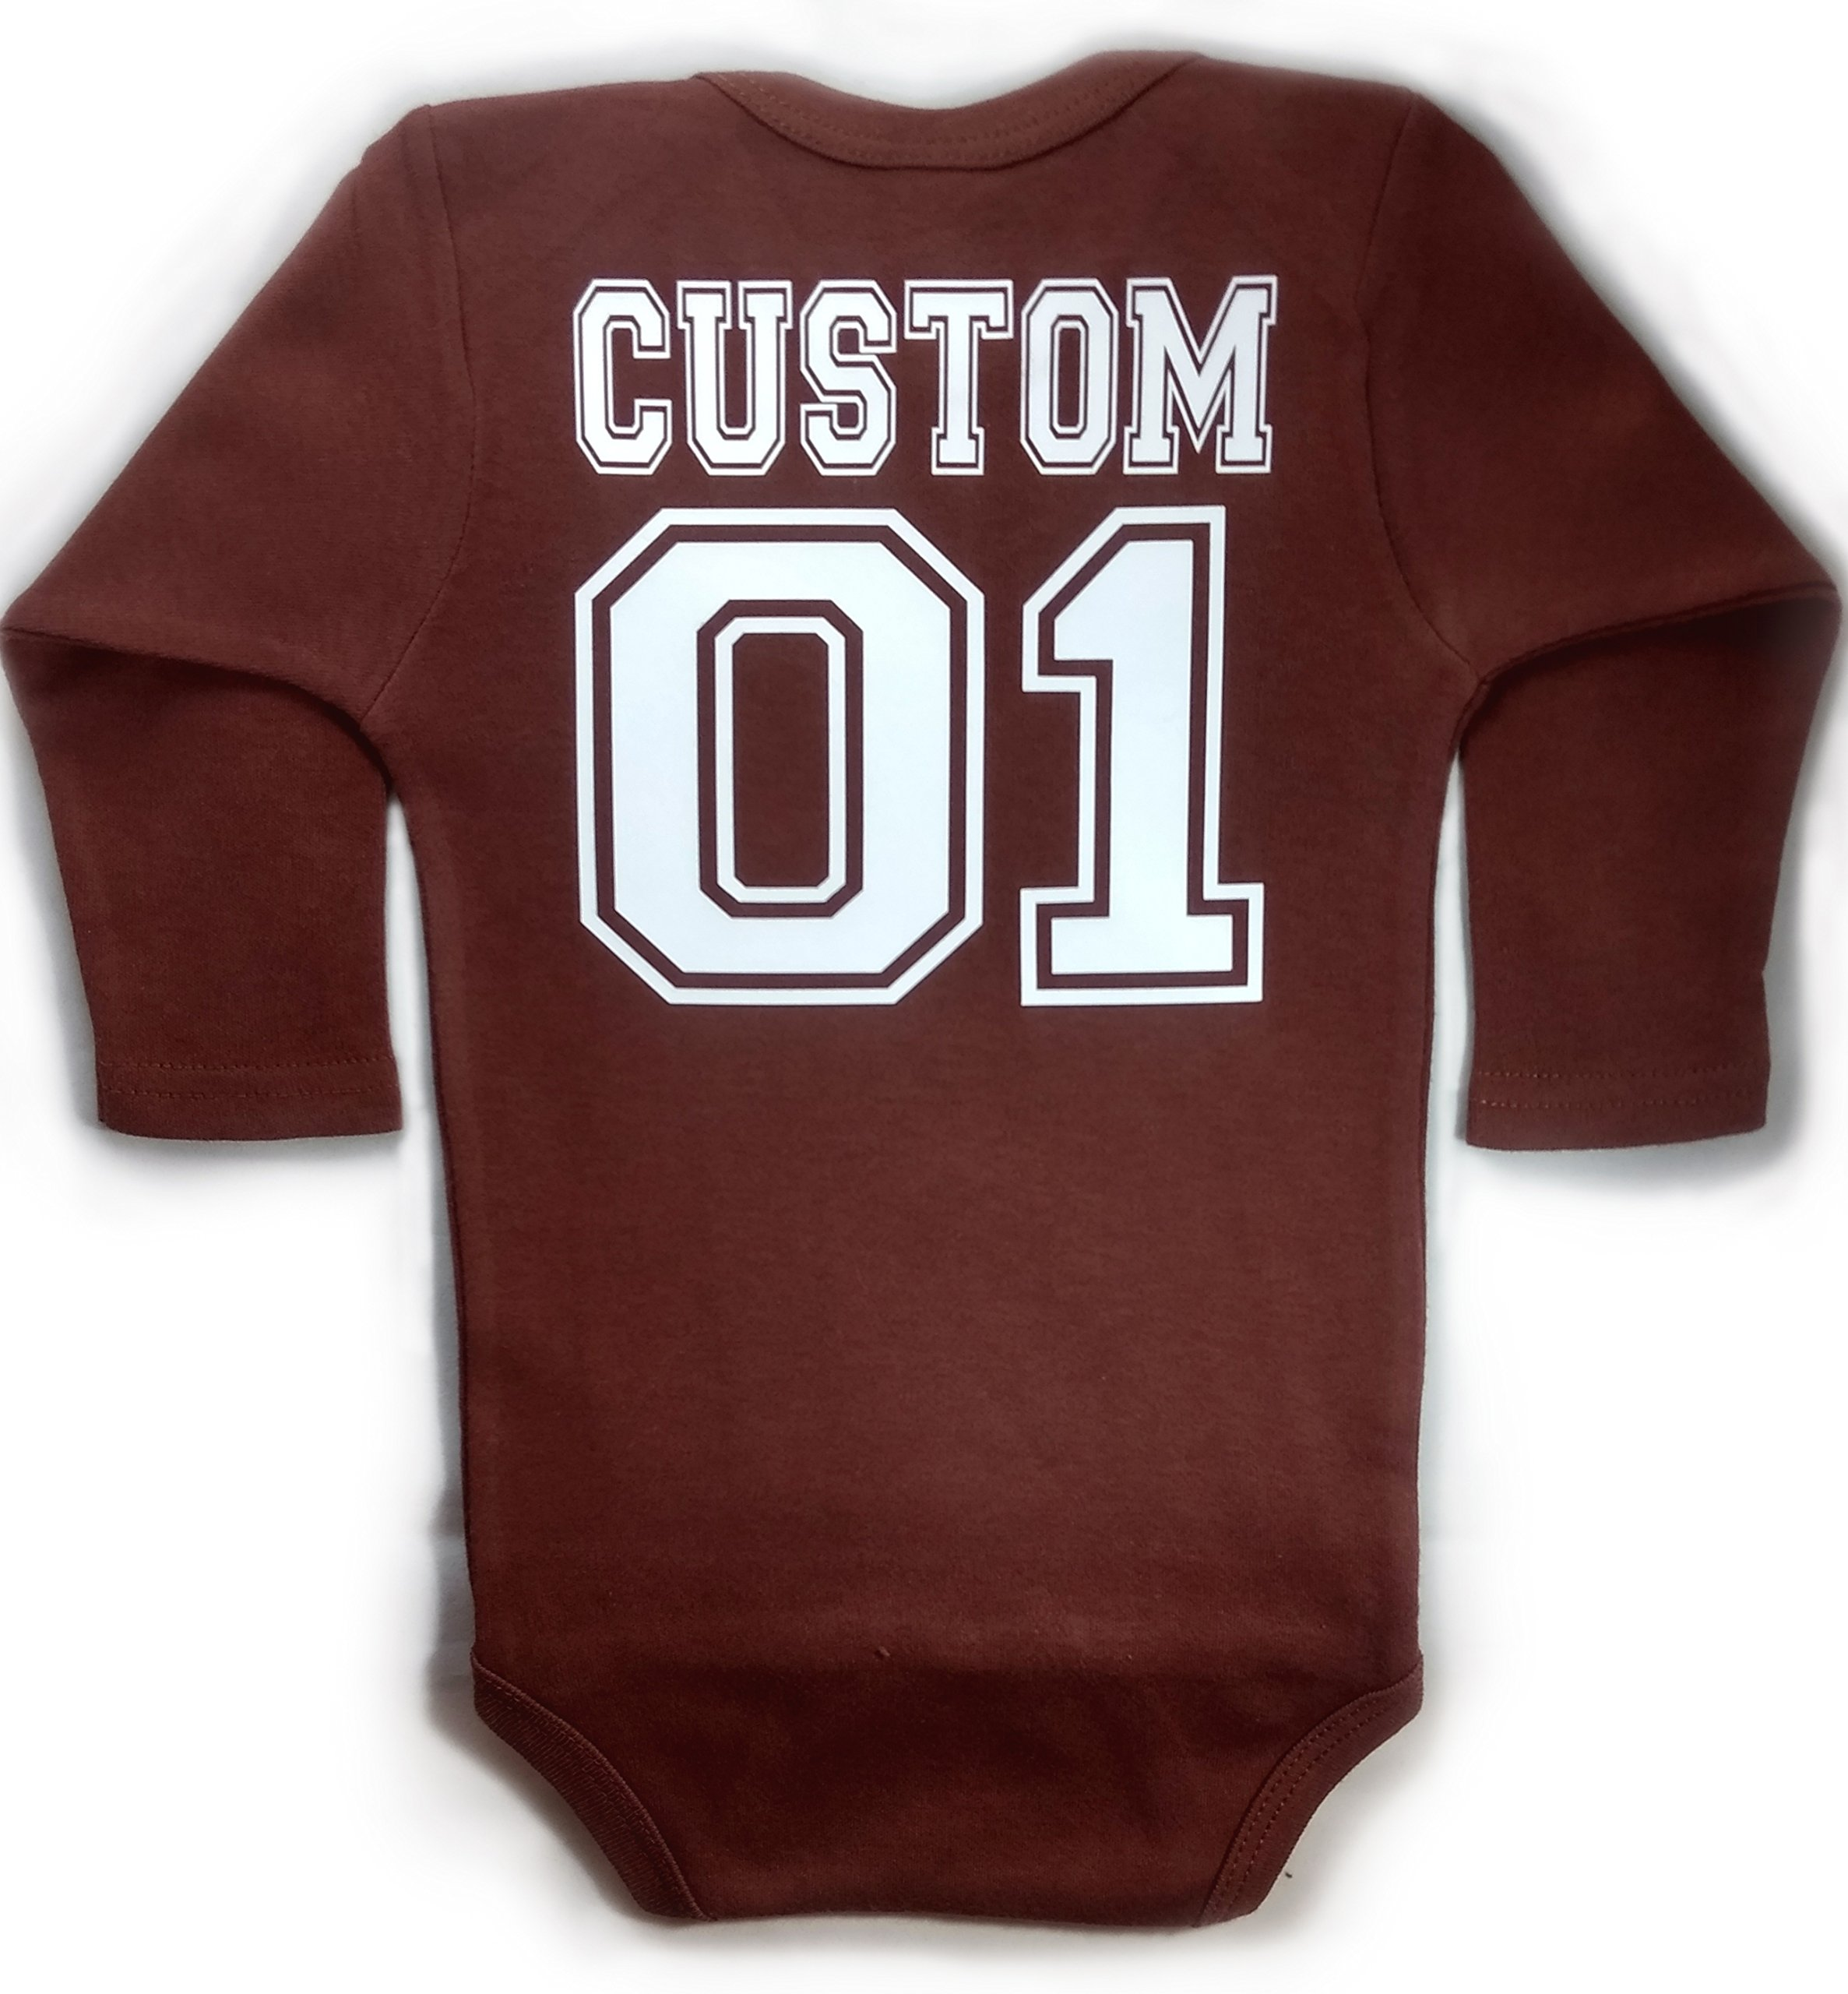 Baby Football Long Sleeve With Custom Personalized Back Baby Bodysuit Brown Unisex (3-6 Months (Small)) by Chamuco Customs (Image #1)